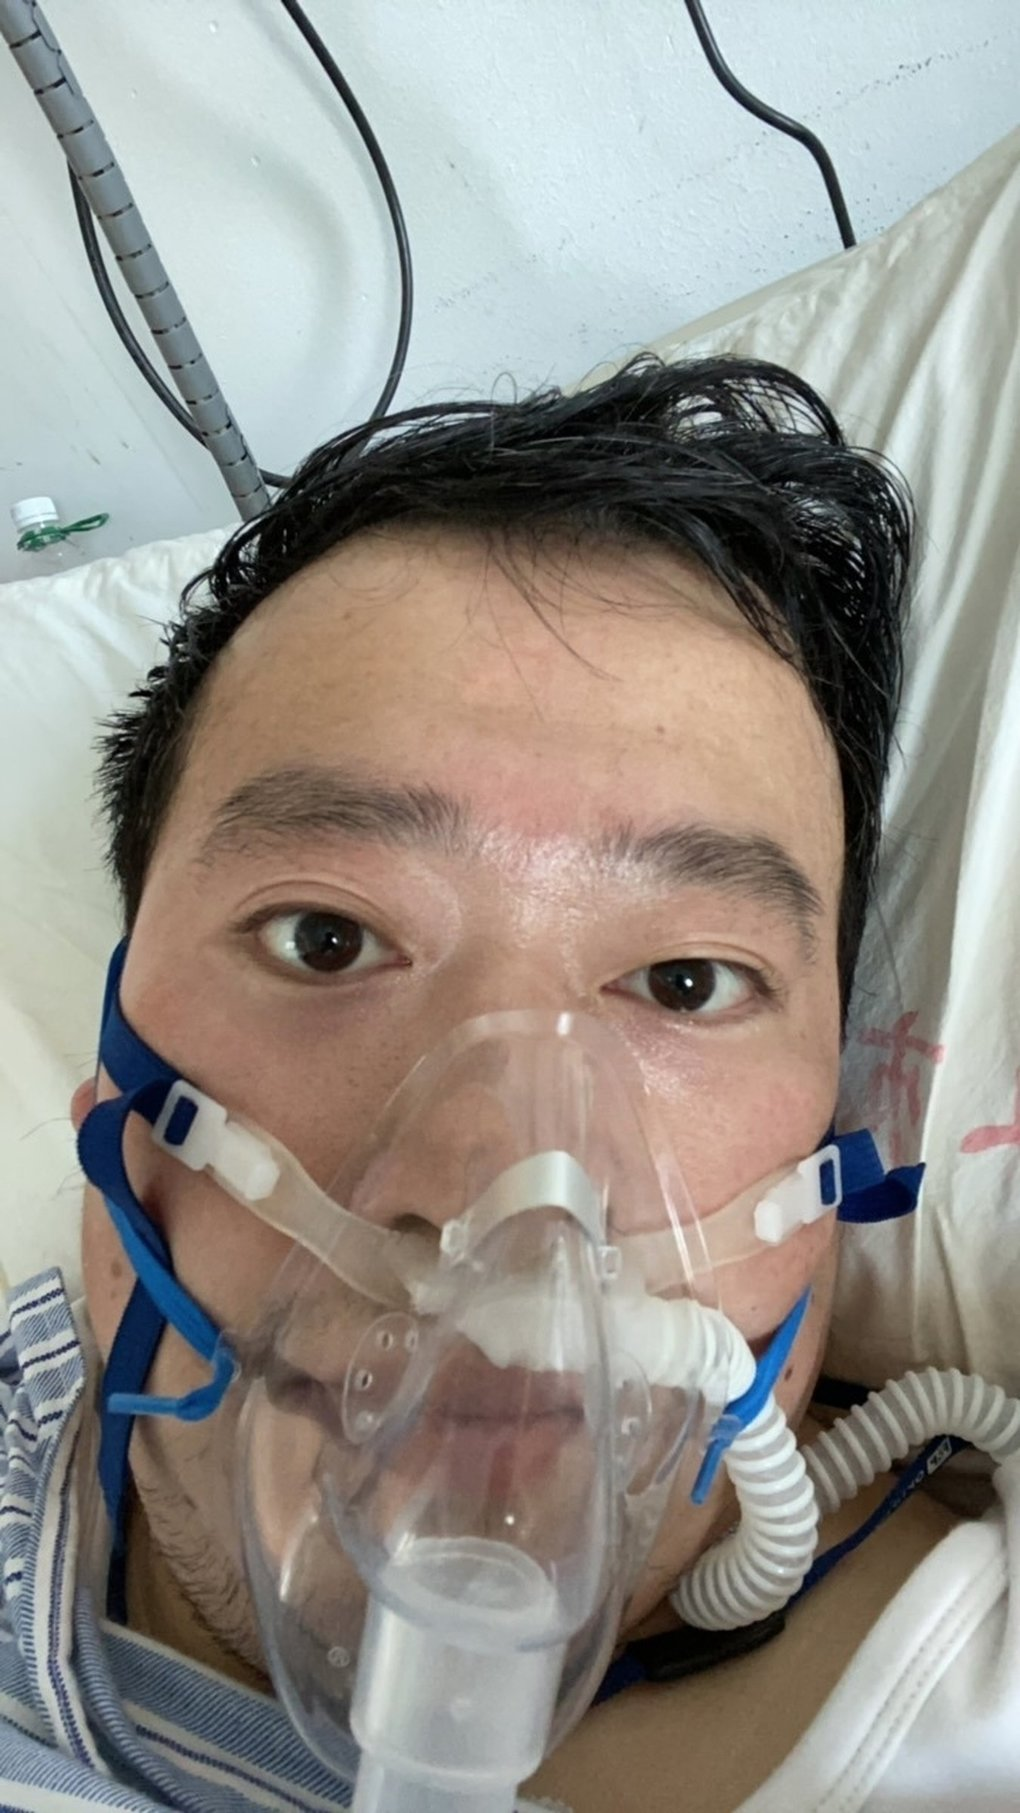 In a photo he provided, Li Wenliang, a doctor in Wuhan who was silenced by the police for being one of the first to warn about the coronavirus. Li's death at 34 from the virus has set off an outpouring of grief and demands for official apologies on social media. (Li Wenliang via The New York Times)